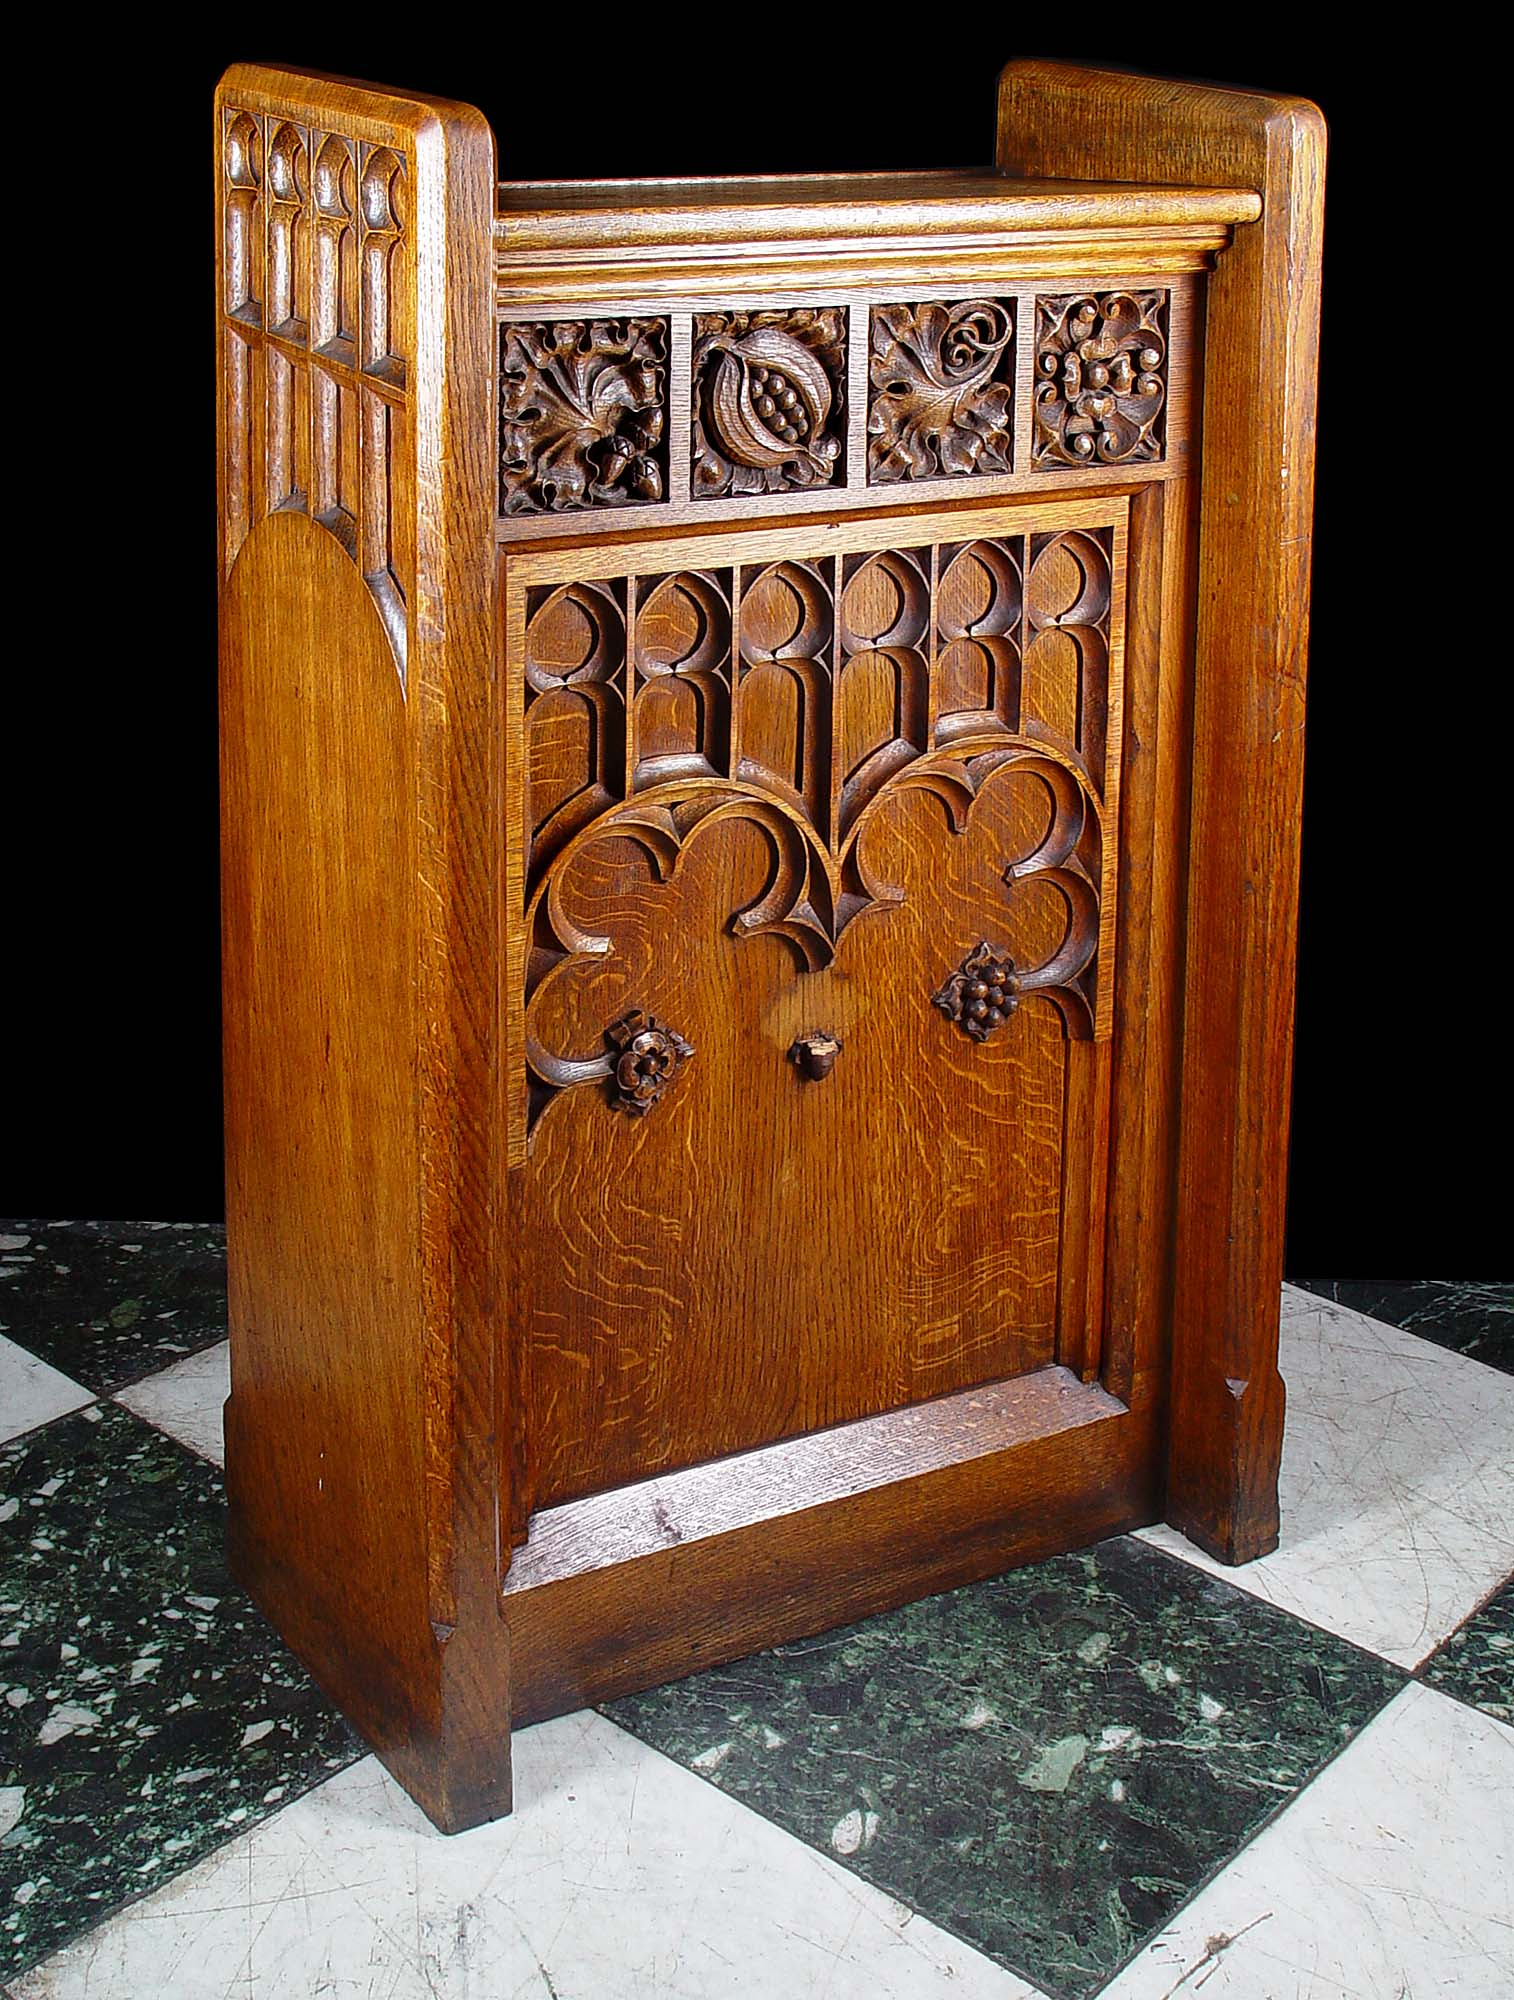 A Gothic Revival carved oak lectern